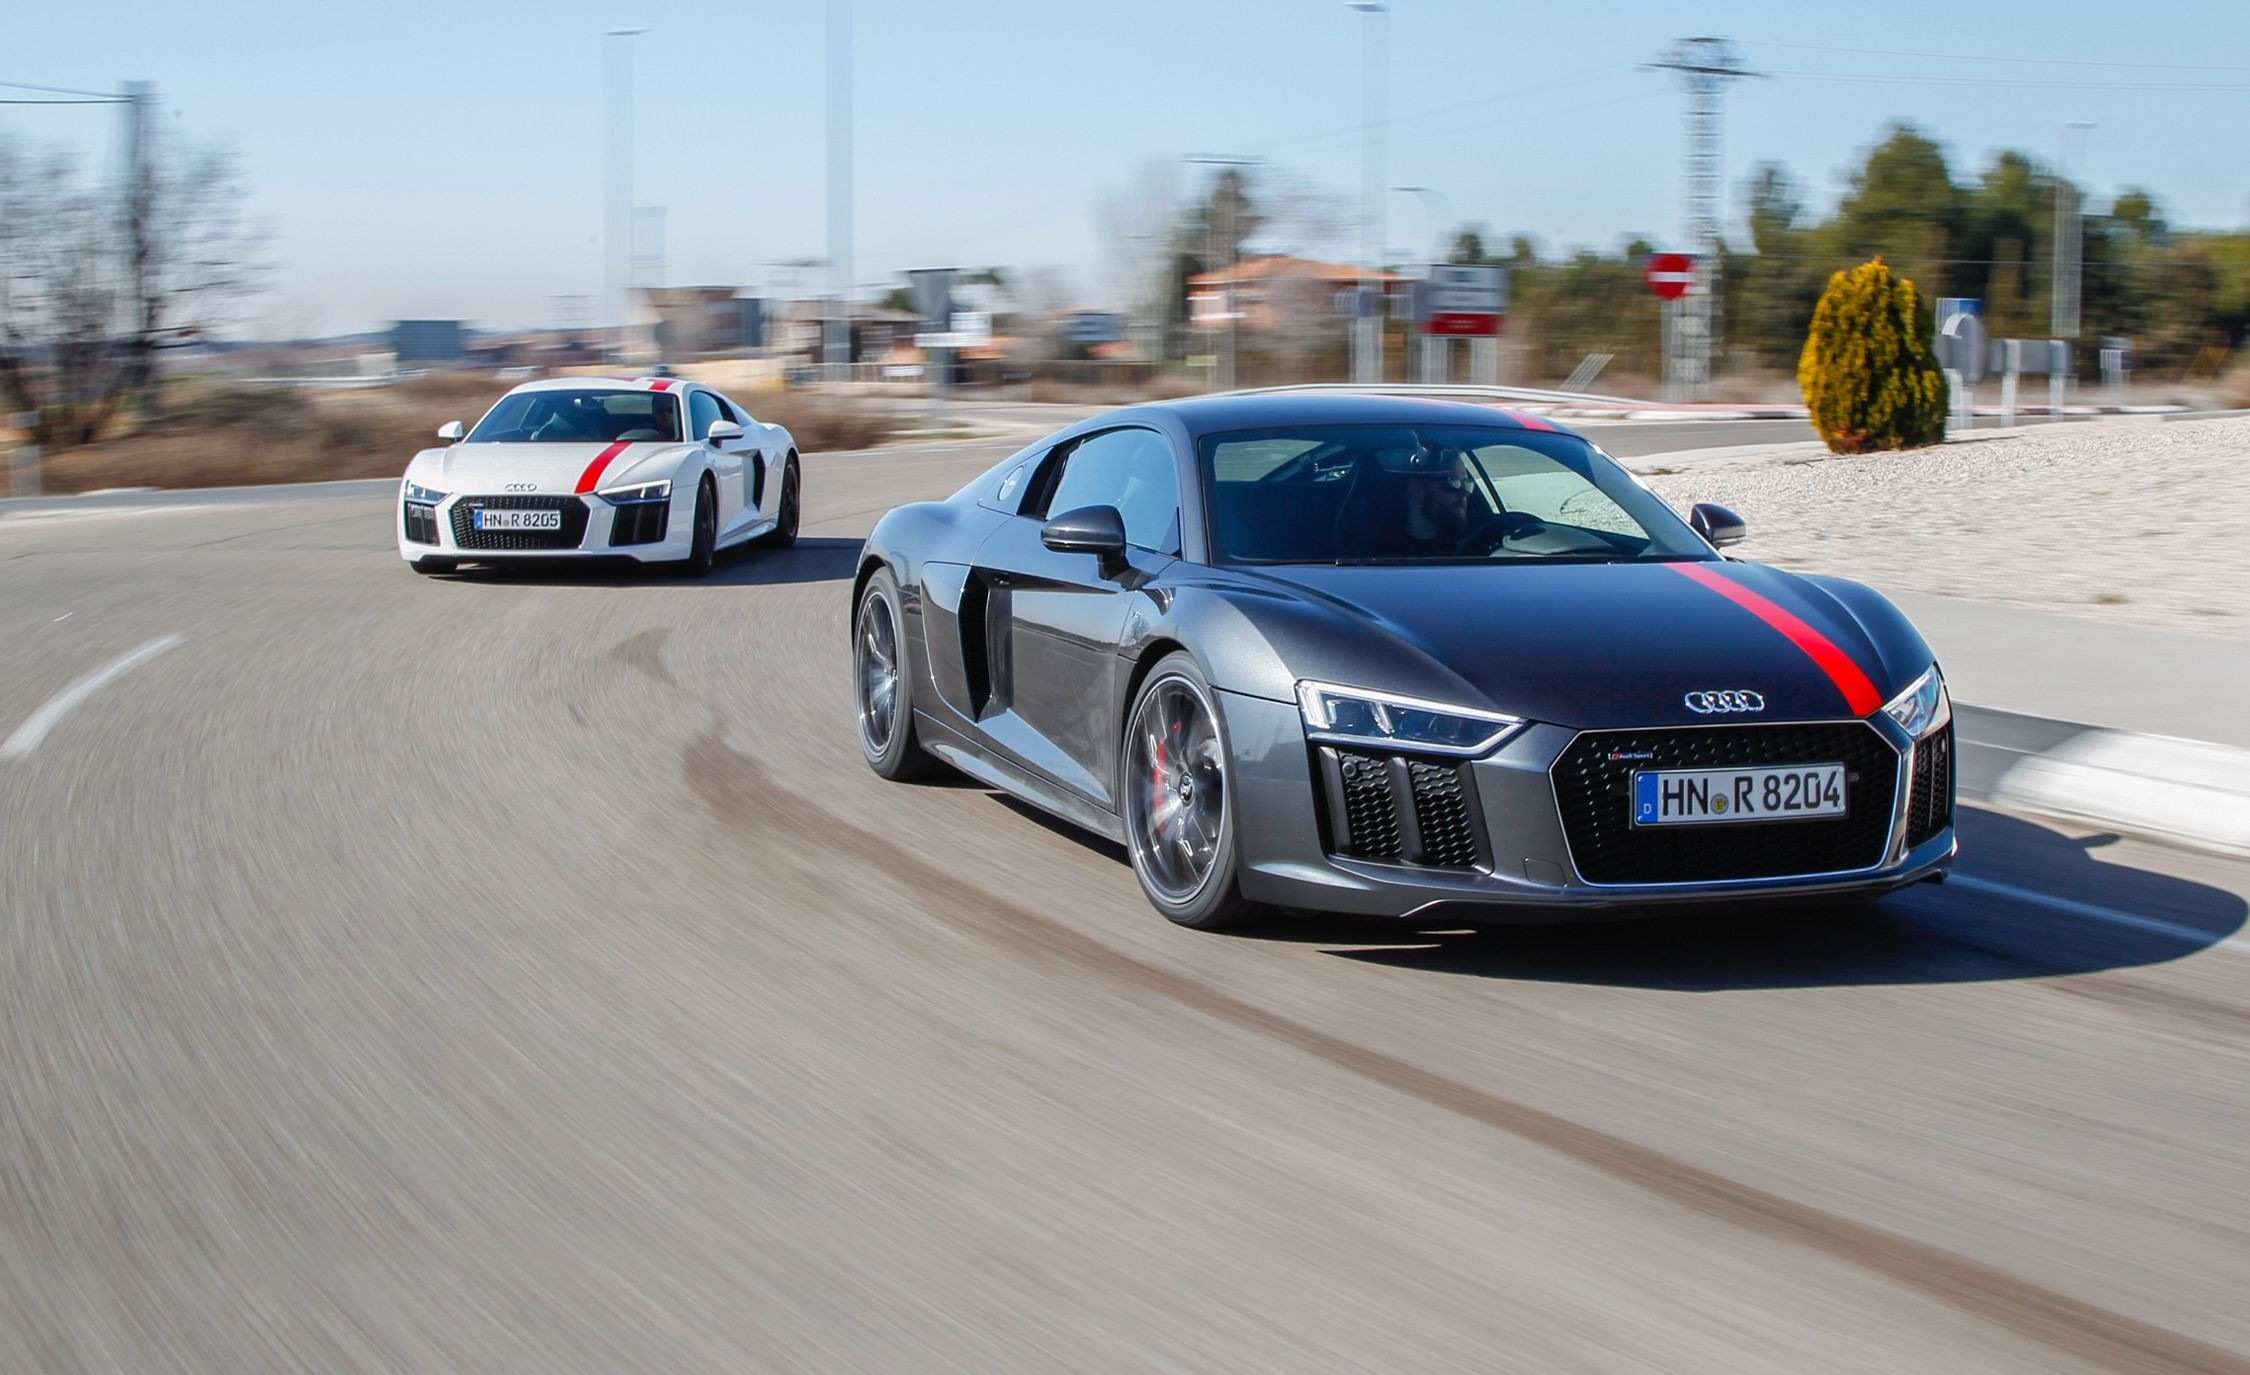 17 All New 2020 Audi R8 LMXs Release Date